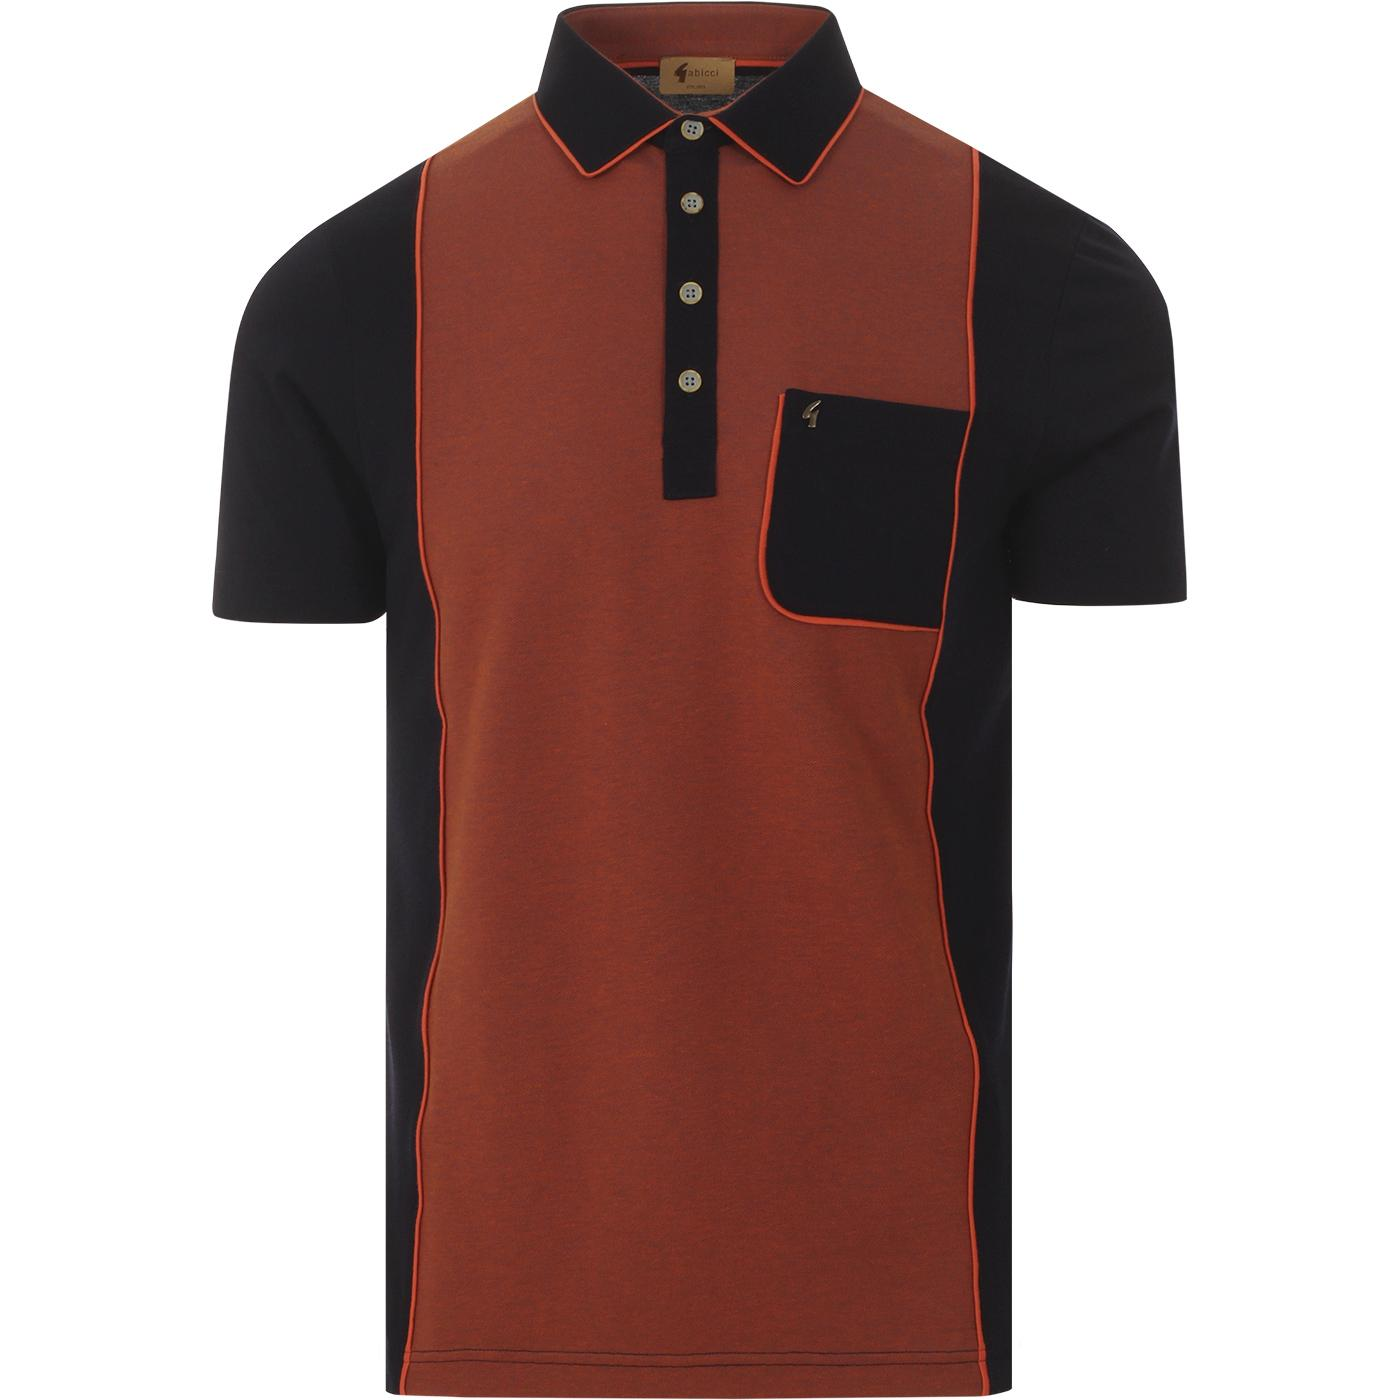 Degrees GABICCI VINTAGE Mod Piped Panel Polo NAVY